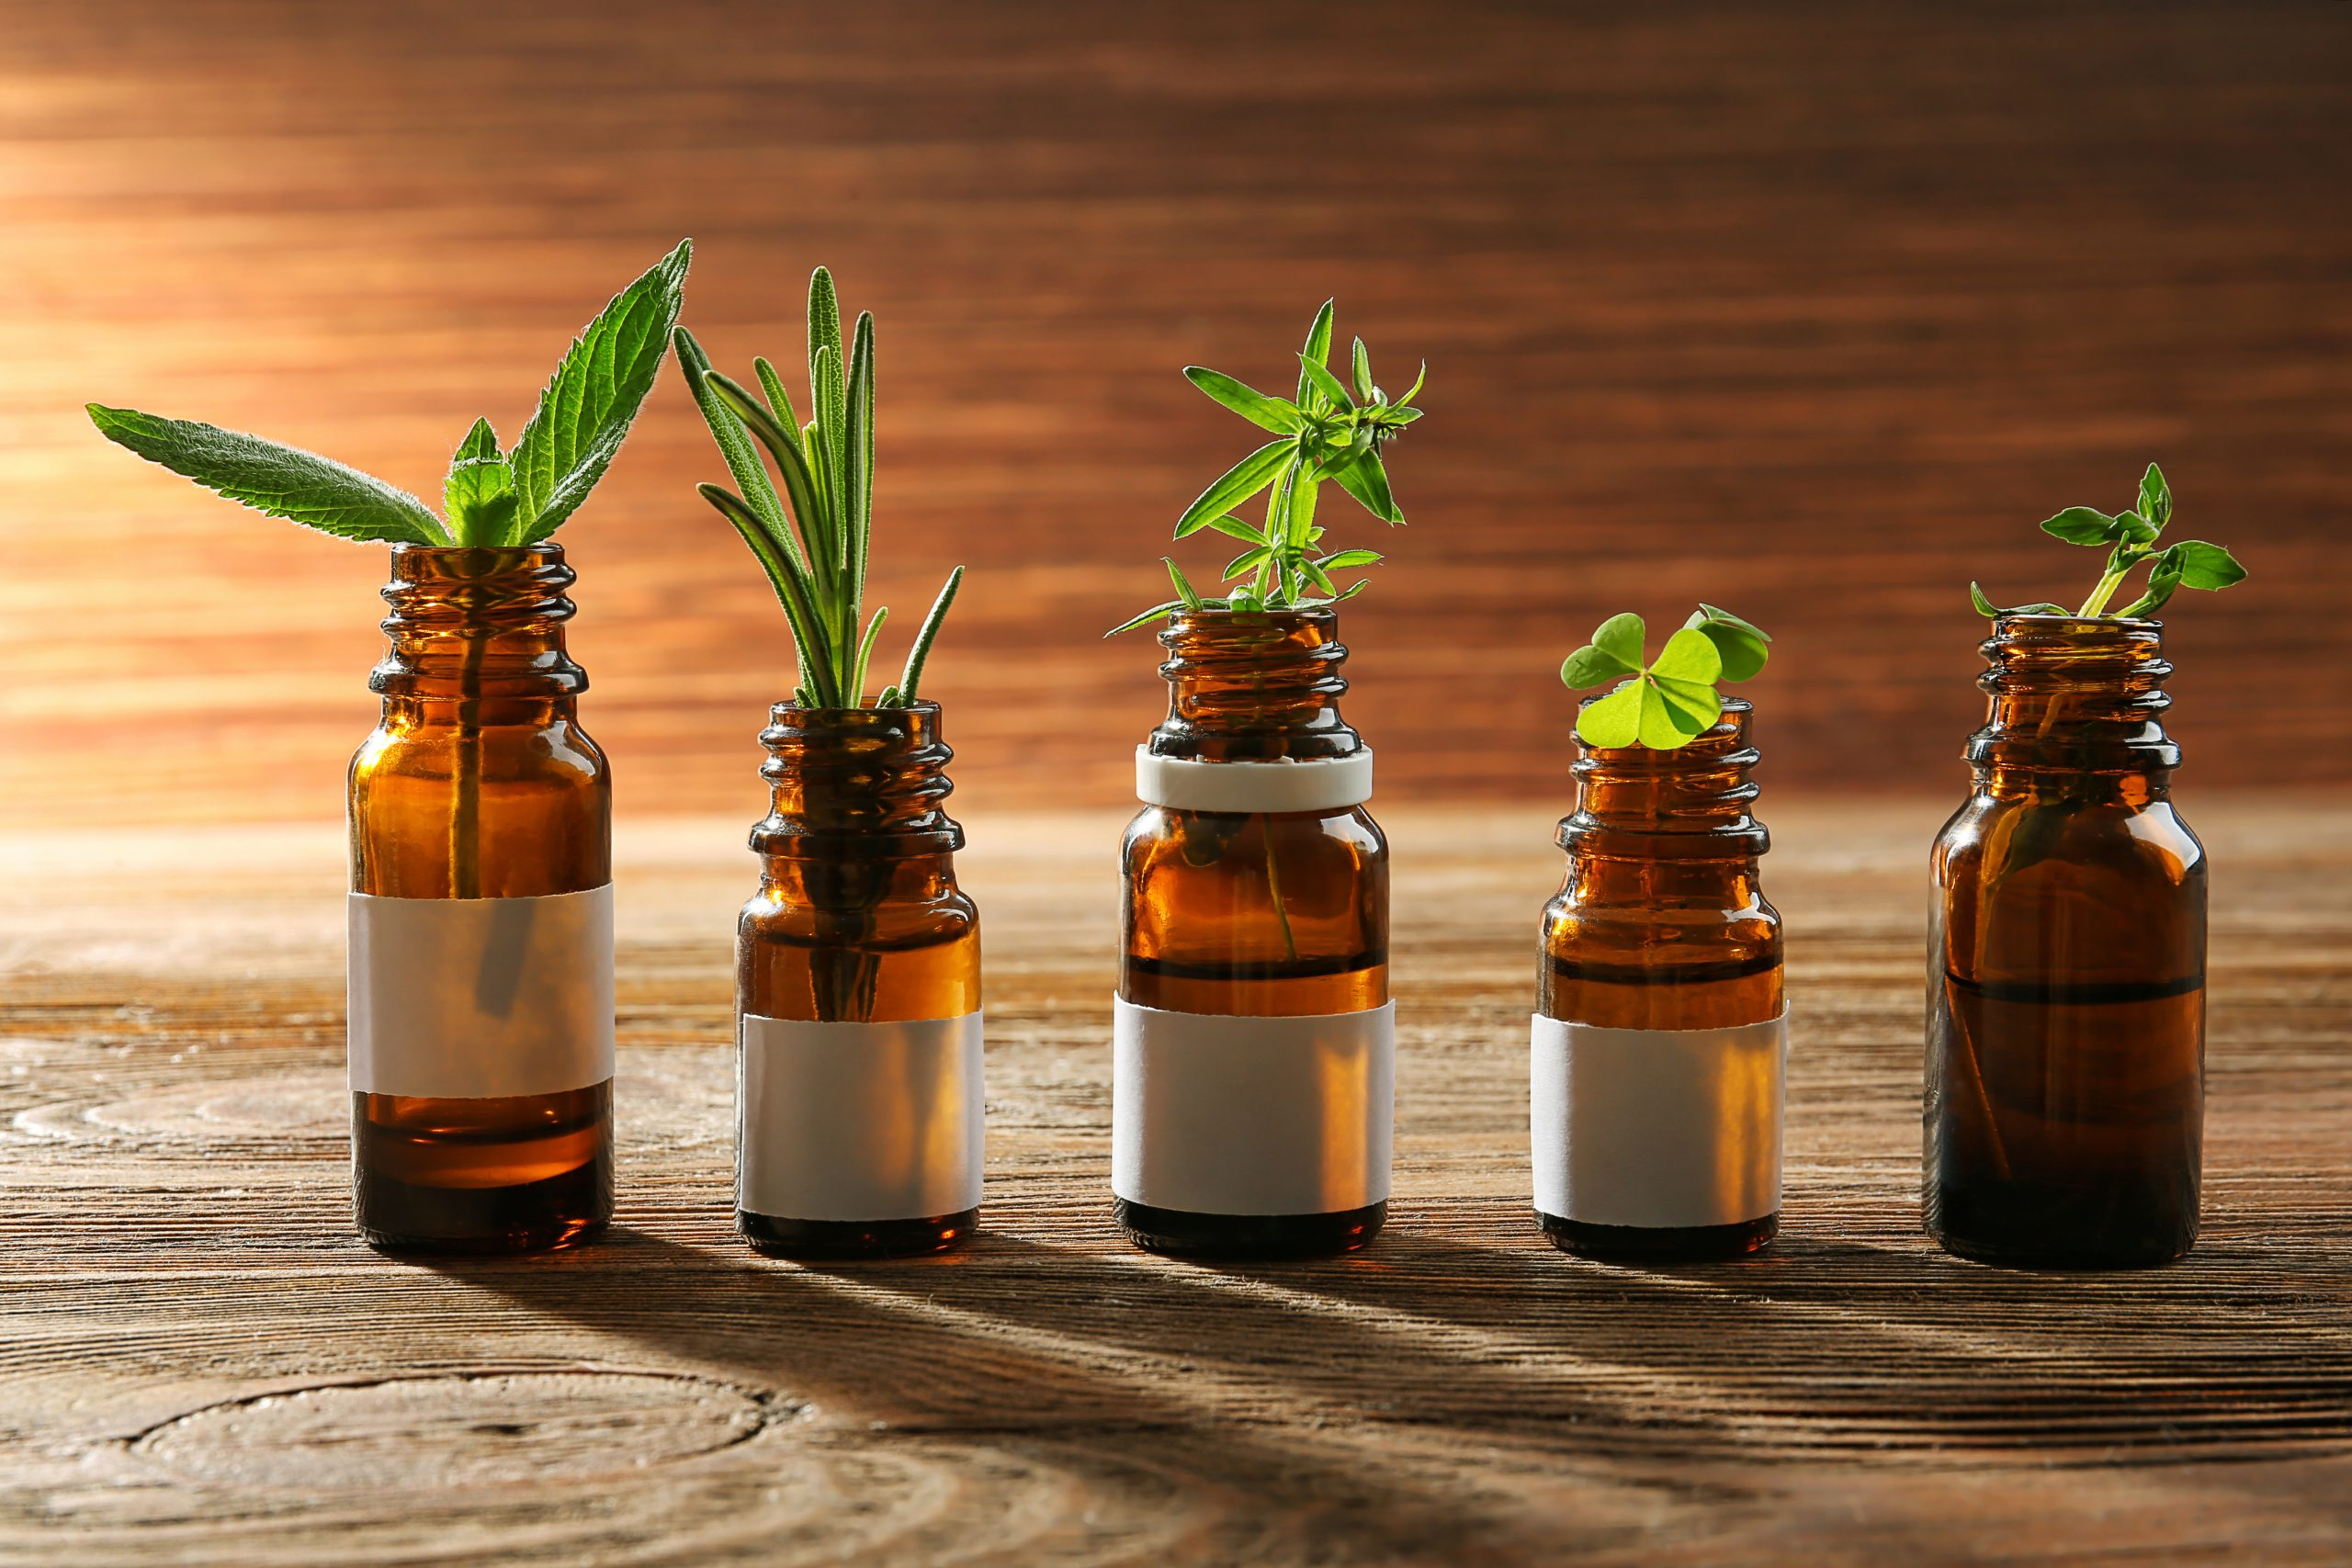 What's The Right Dosage For Dogs Of CBD Oil?